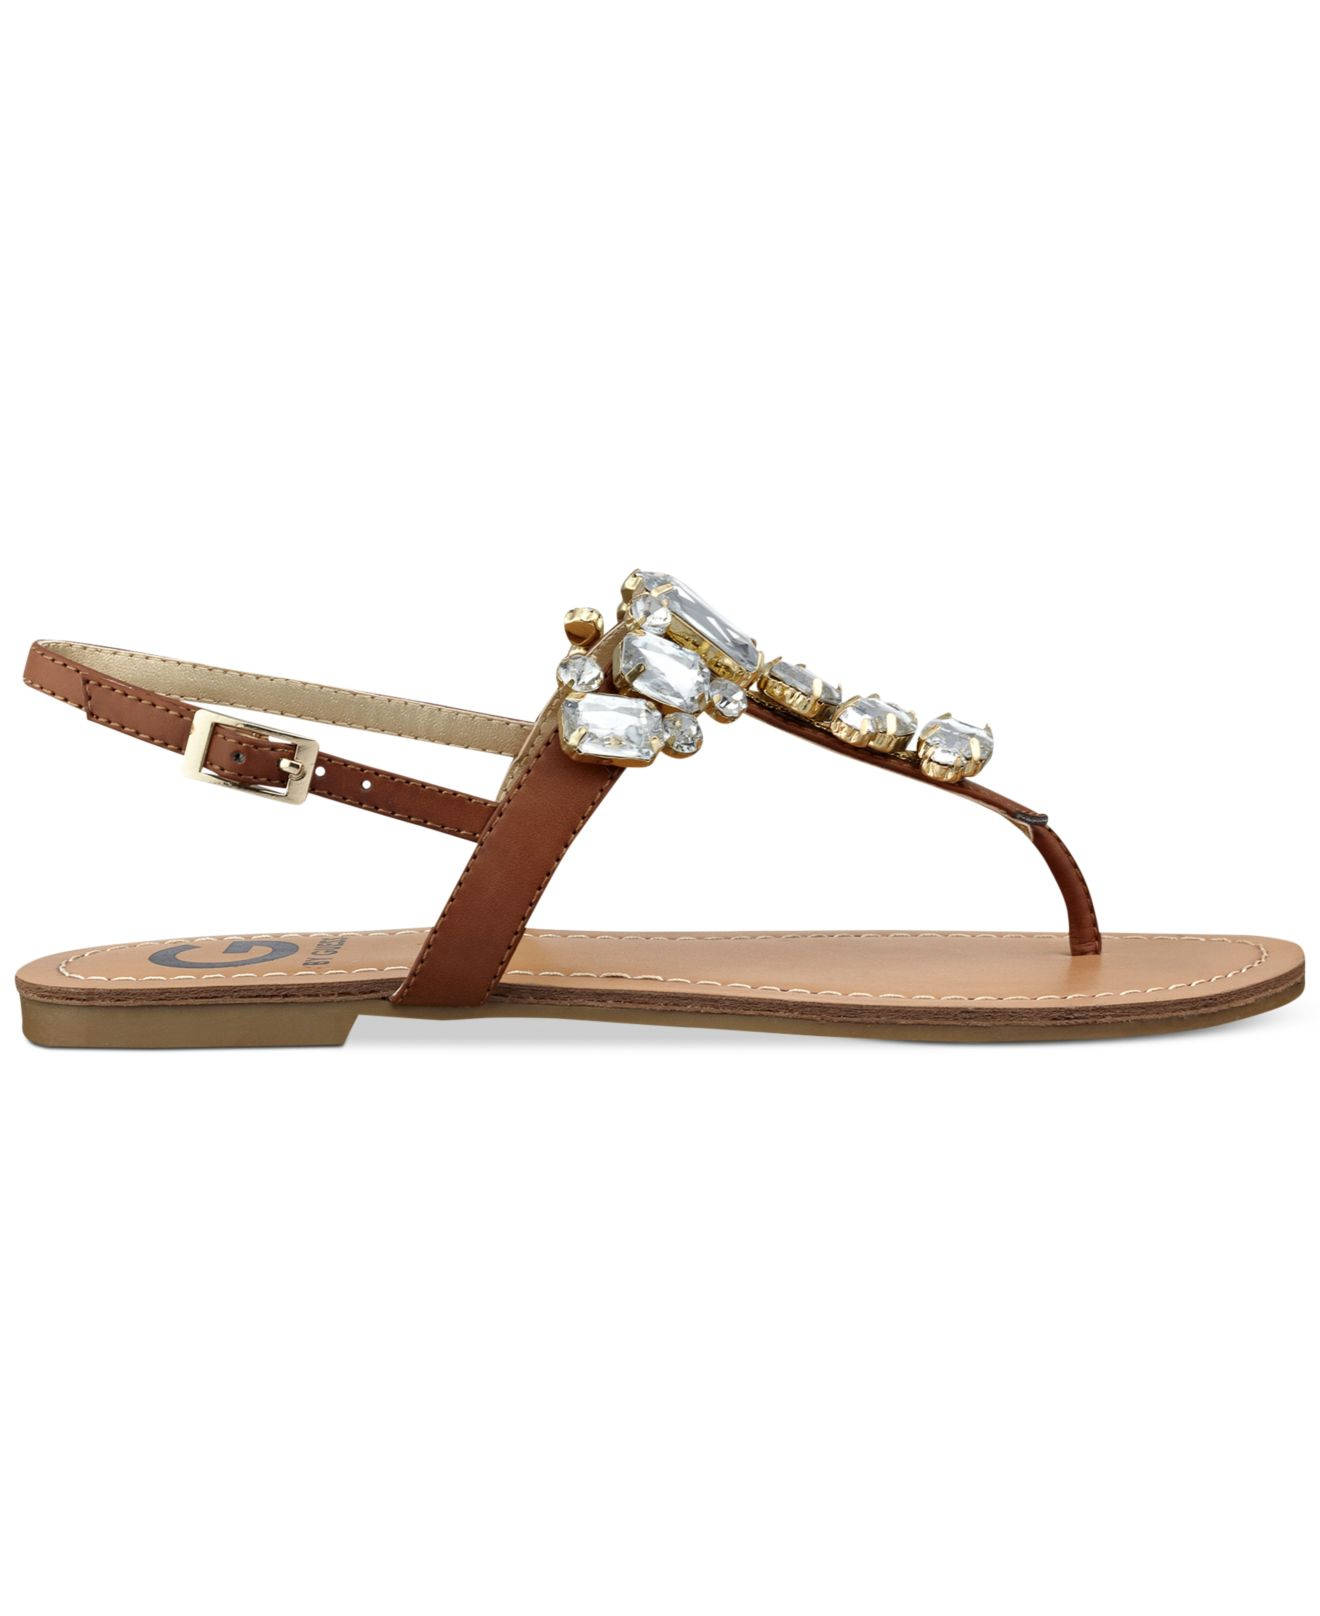 58c8d17ea Lyst - G by Guess Women S Kyli T-Strap Flat Thong Sandals in Brown